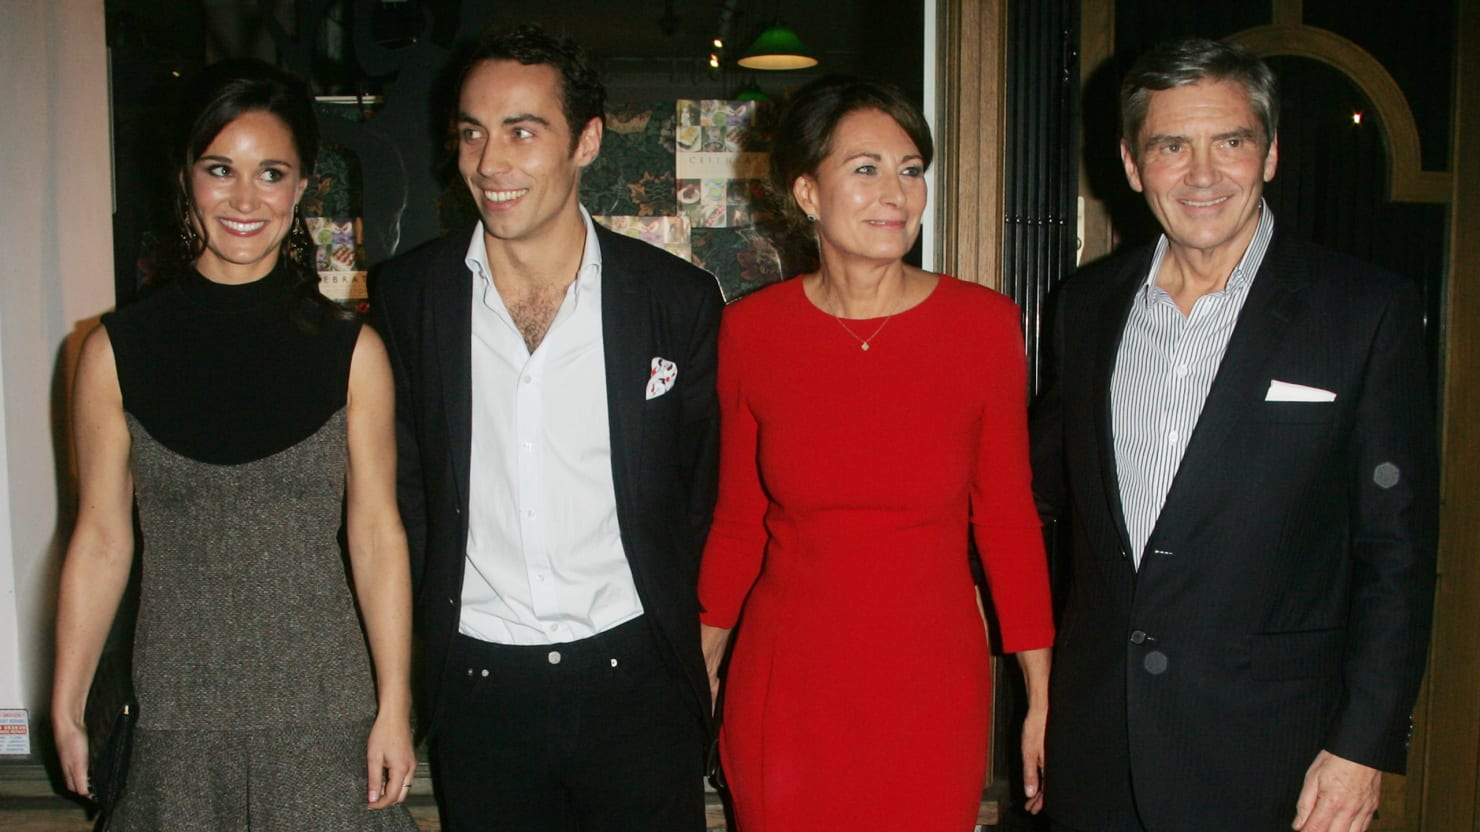 The Middleton family are slammed for cashing in on the Olympics, but is it fair